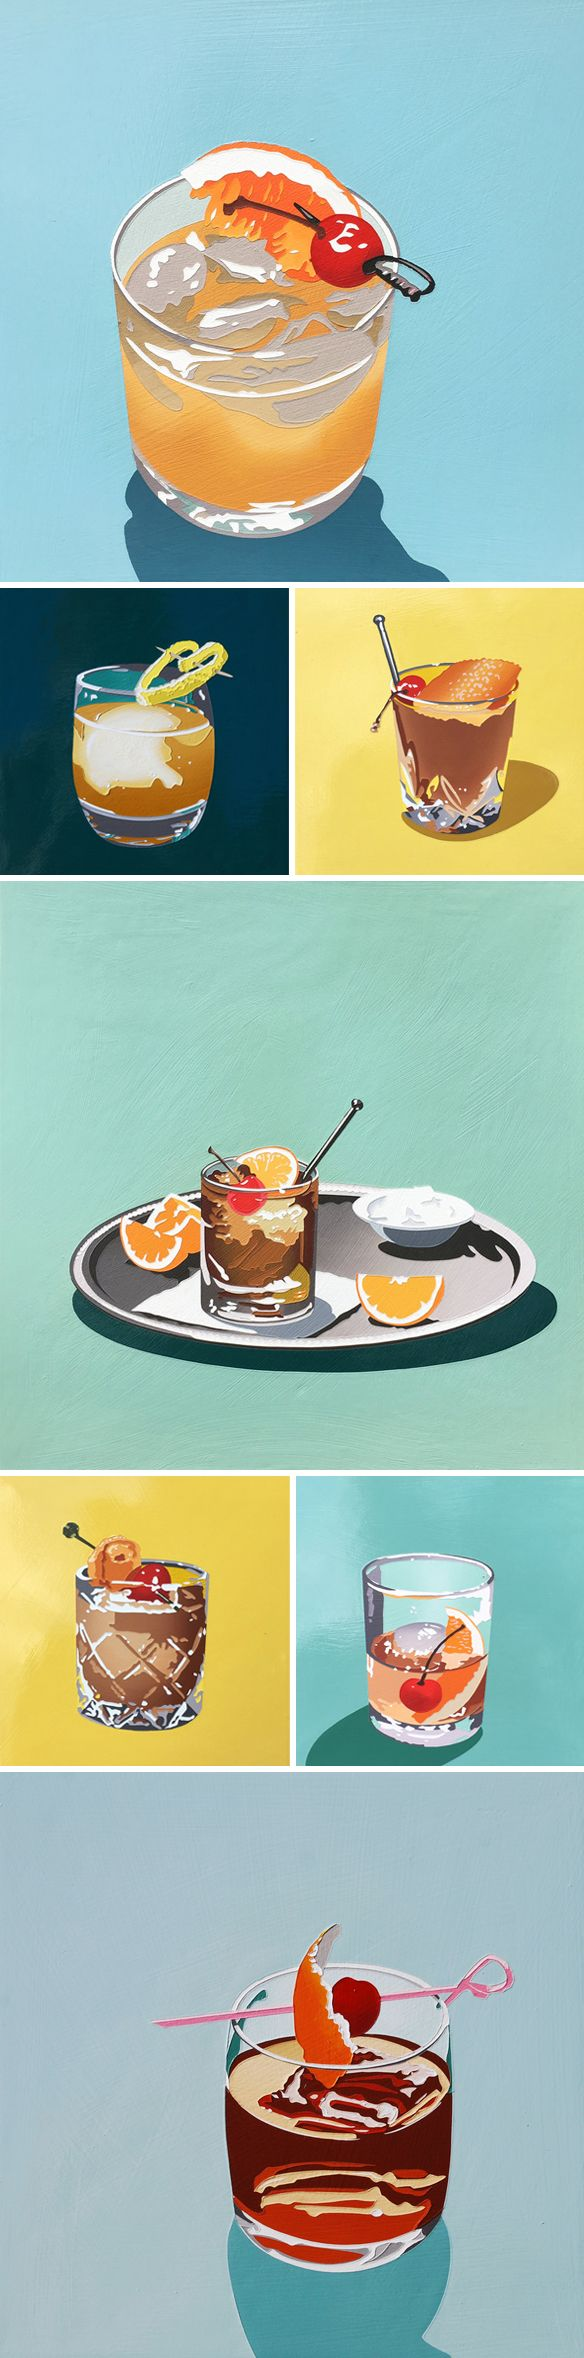 """bourbon"" paintings by lori larusso"